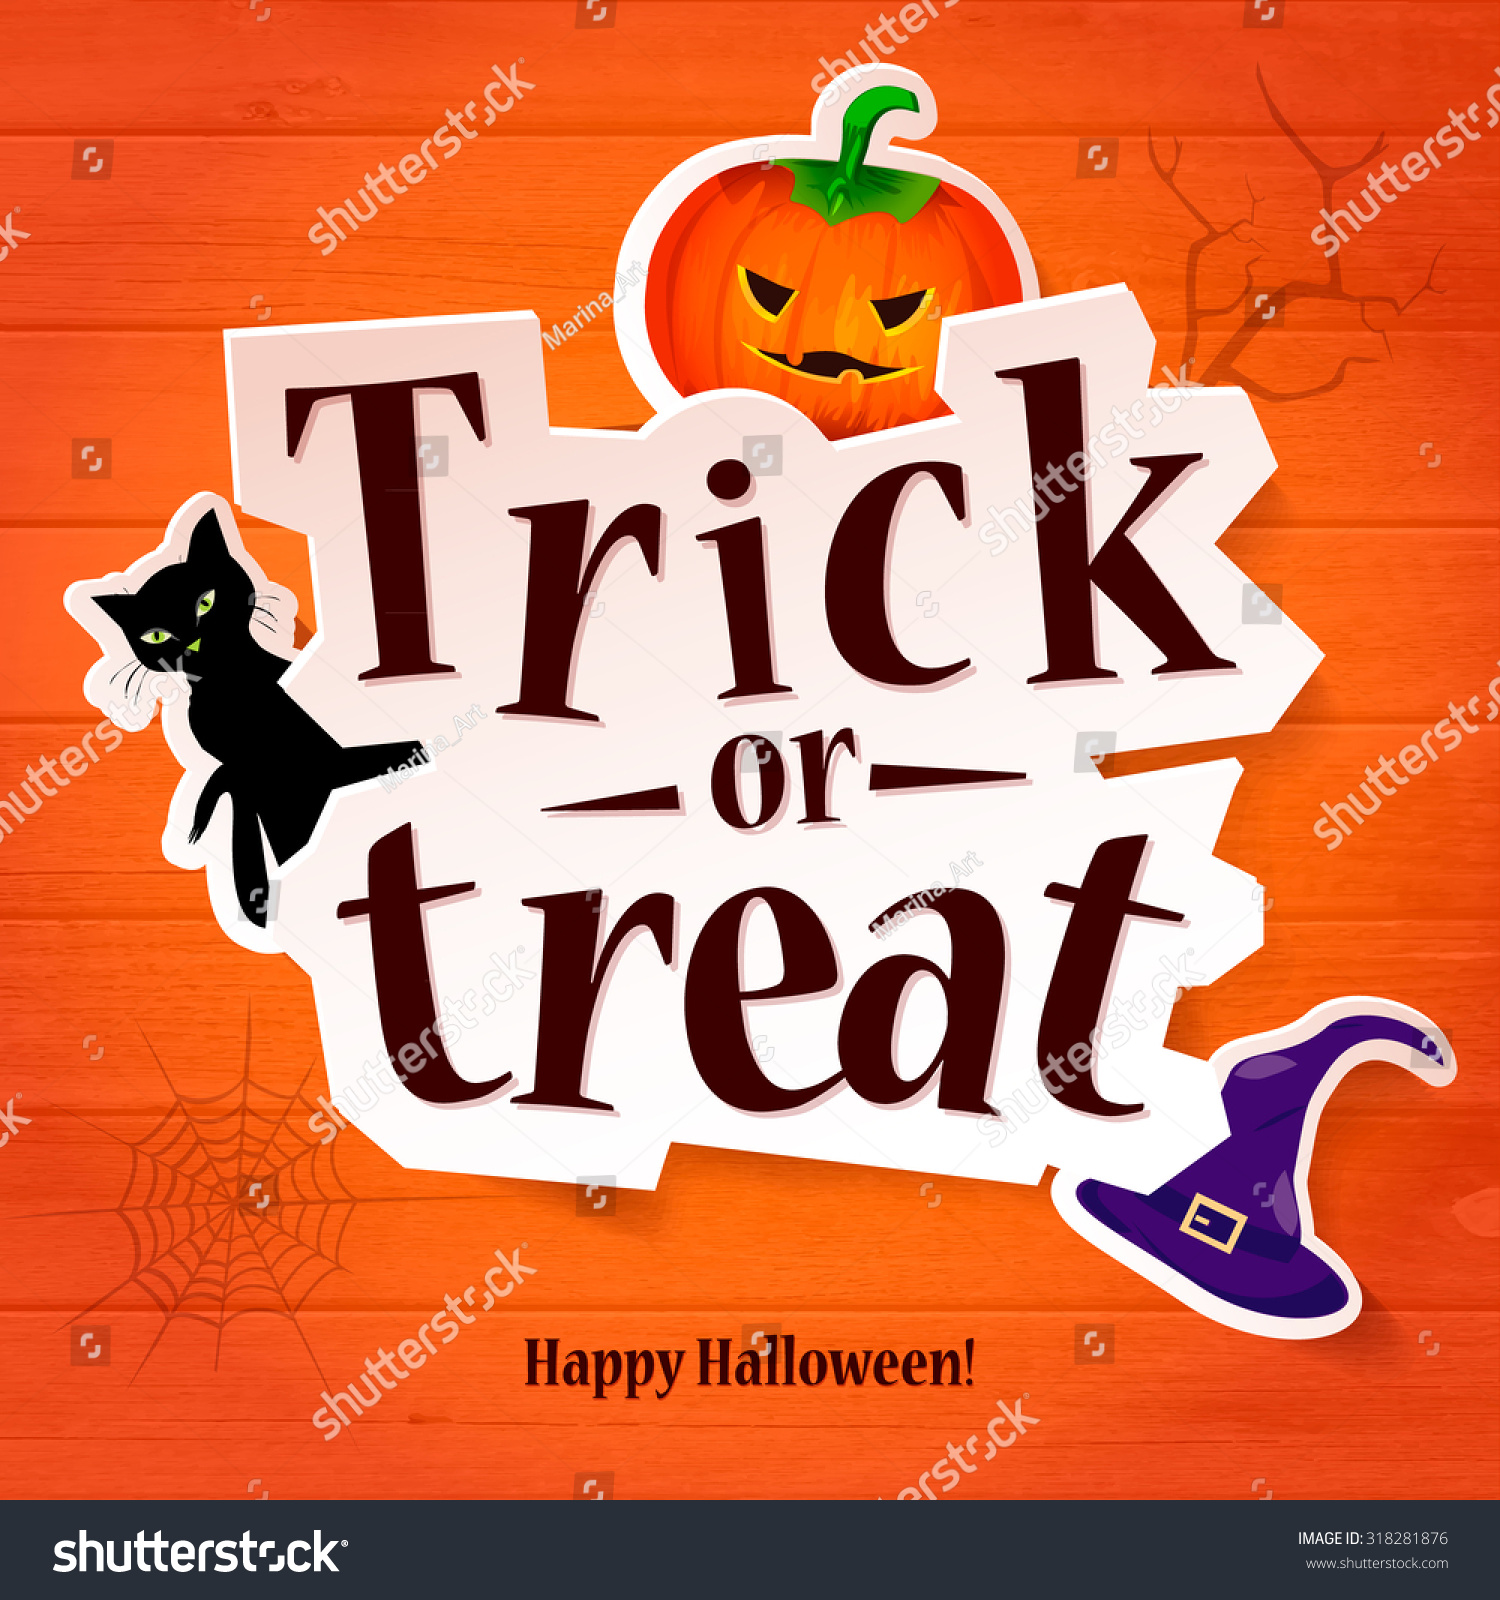 Amazing Happy Halloween Greeting Card Pumpkin Cat Stock Vector 318281876    Shutterstock